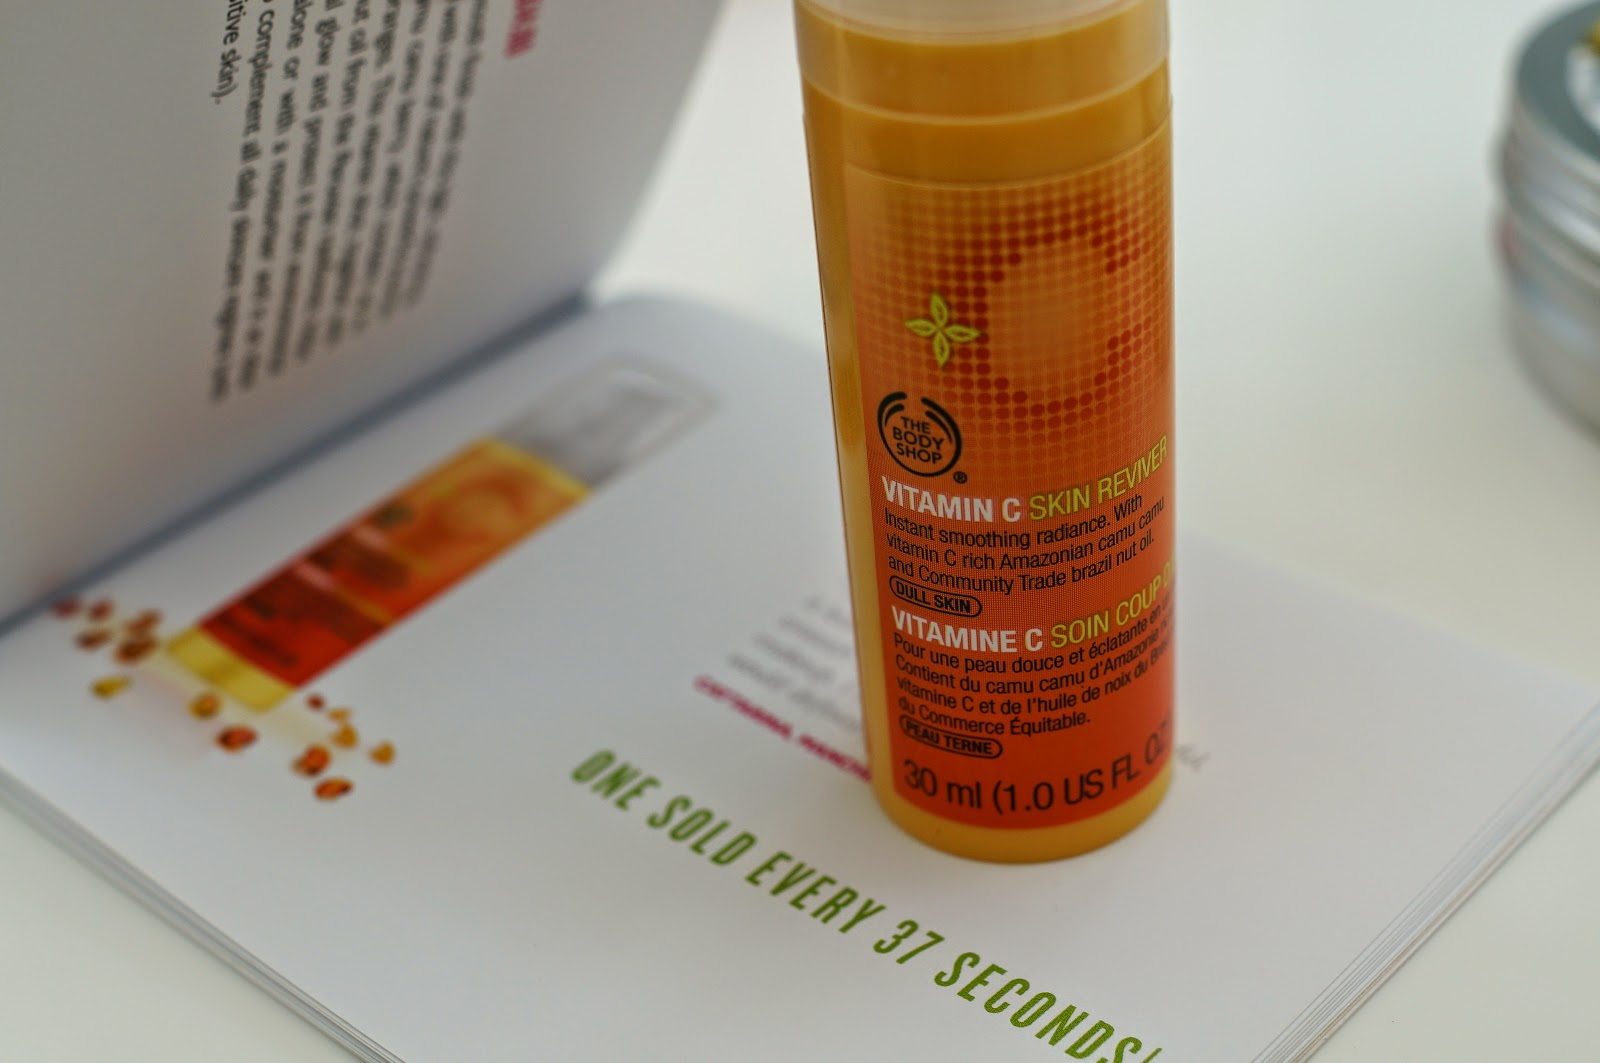 The Body Shop Vitamin C Skin Reviver